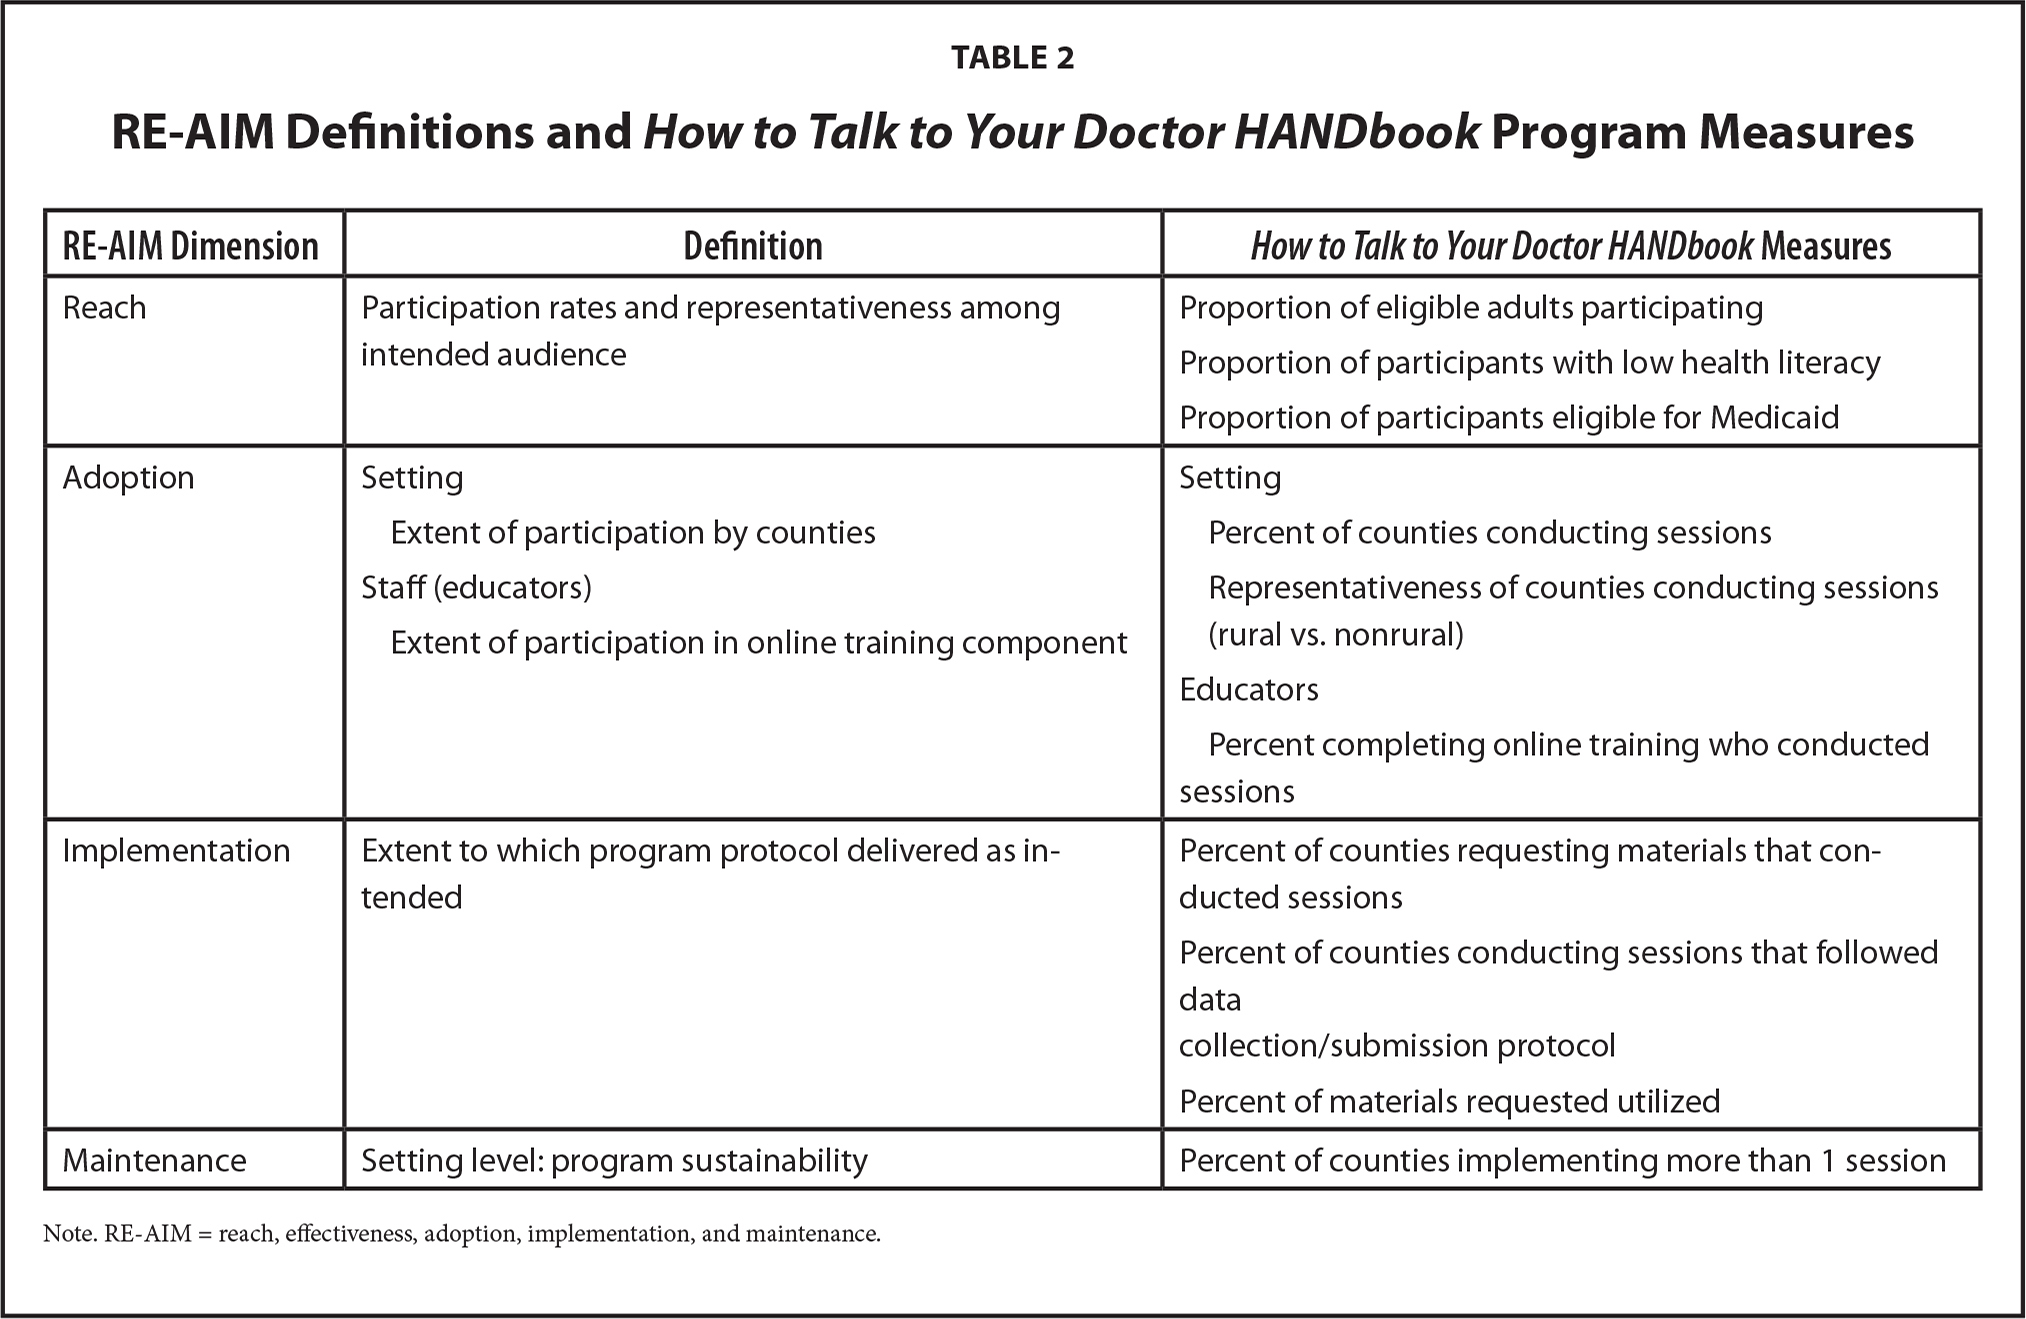 RE-AIM Definitions and How to Talk to Your Doctor HANDbook Program Measures